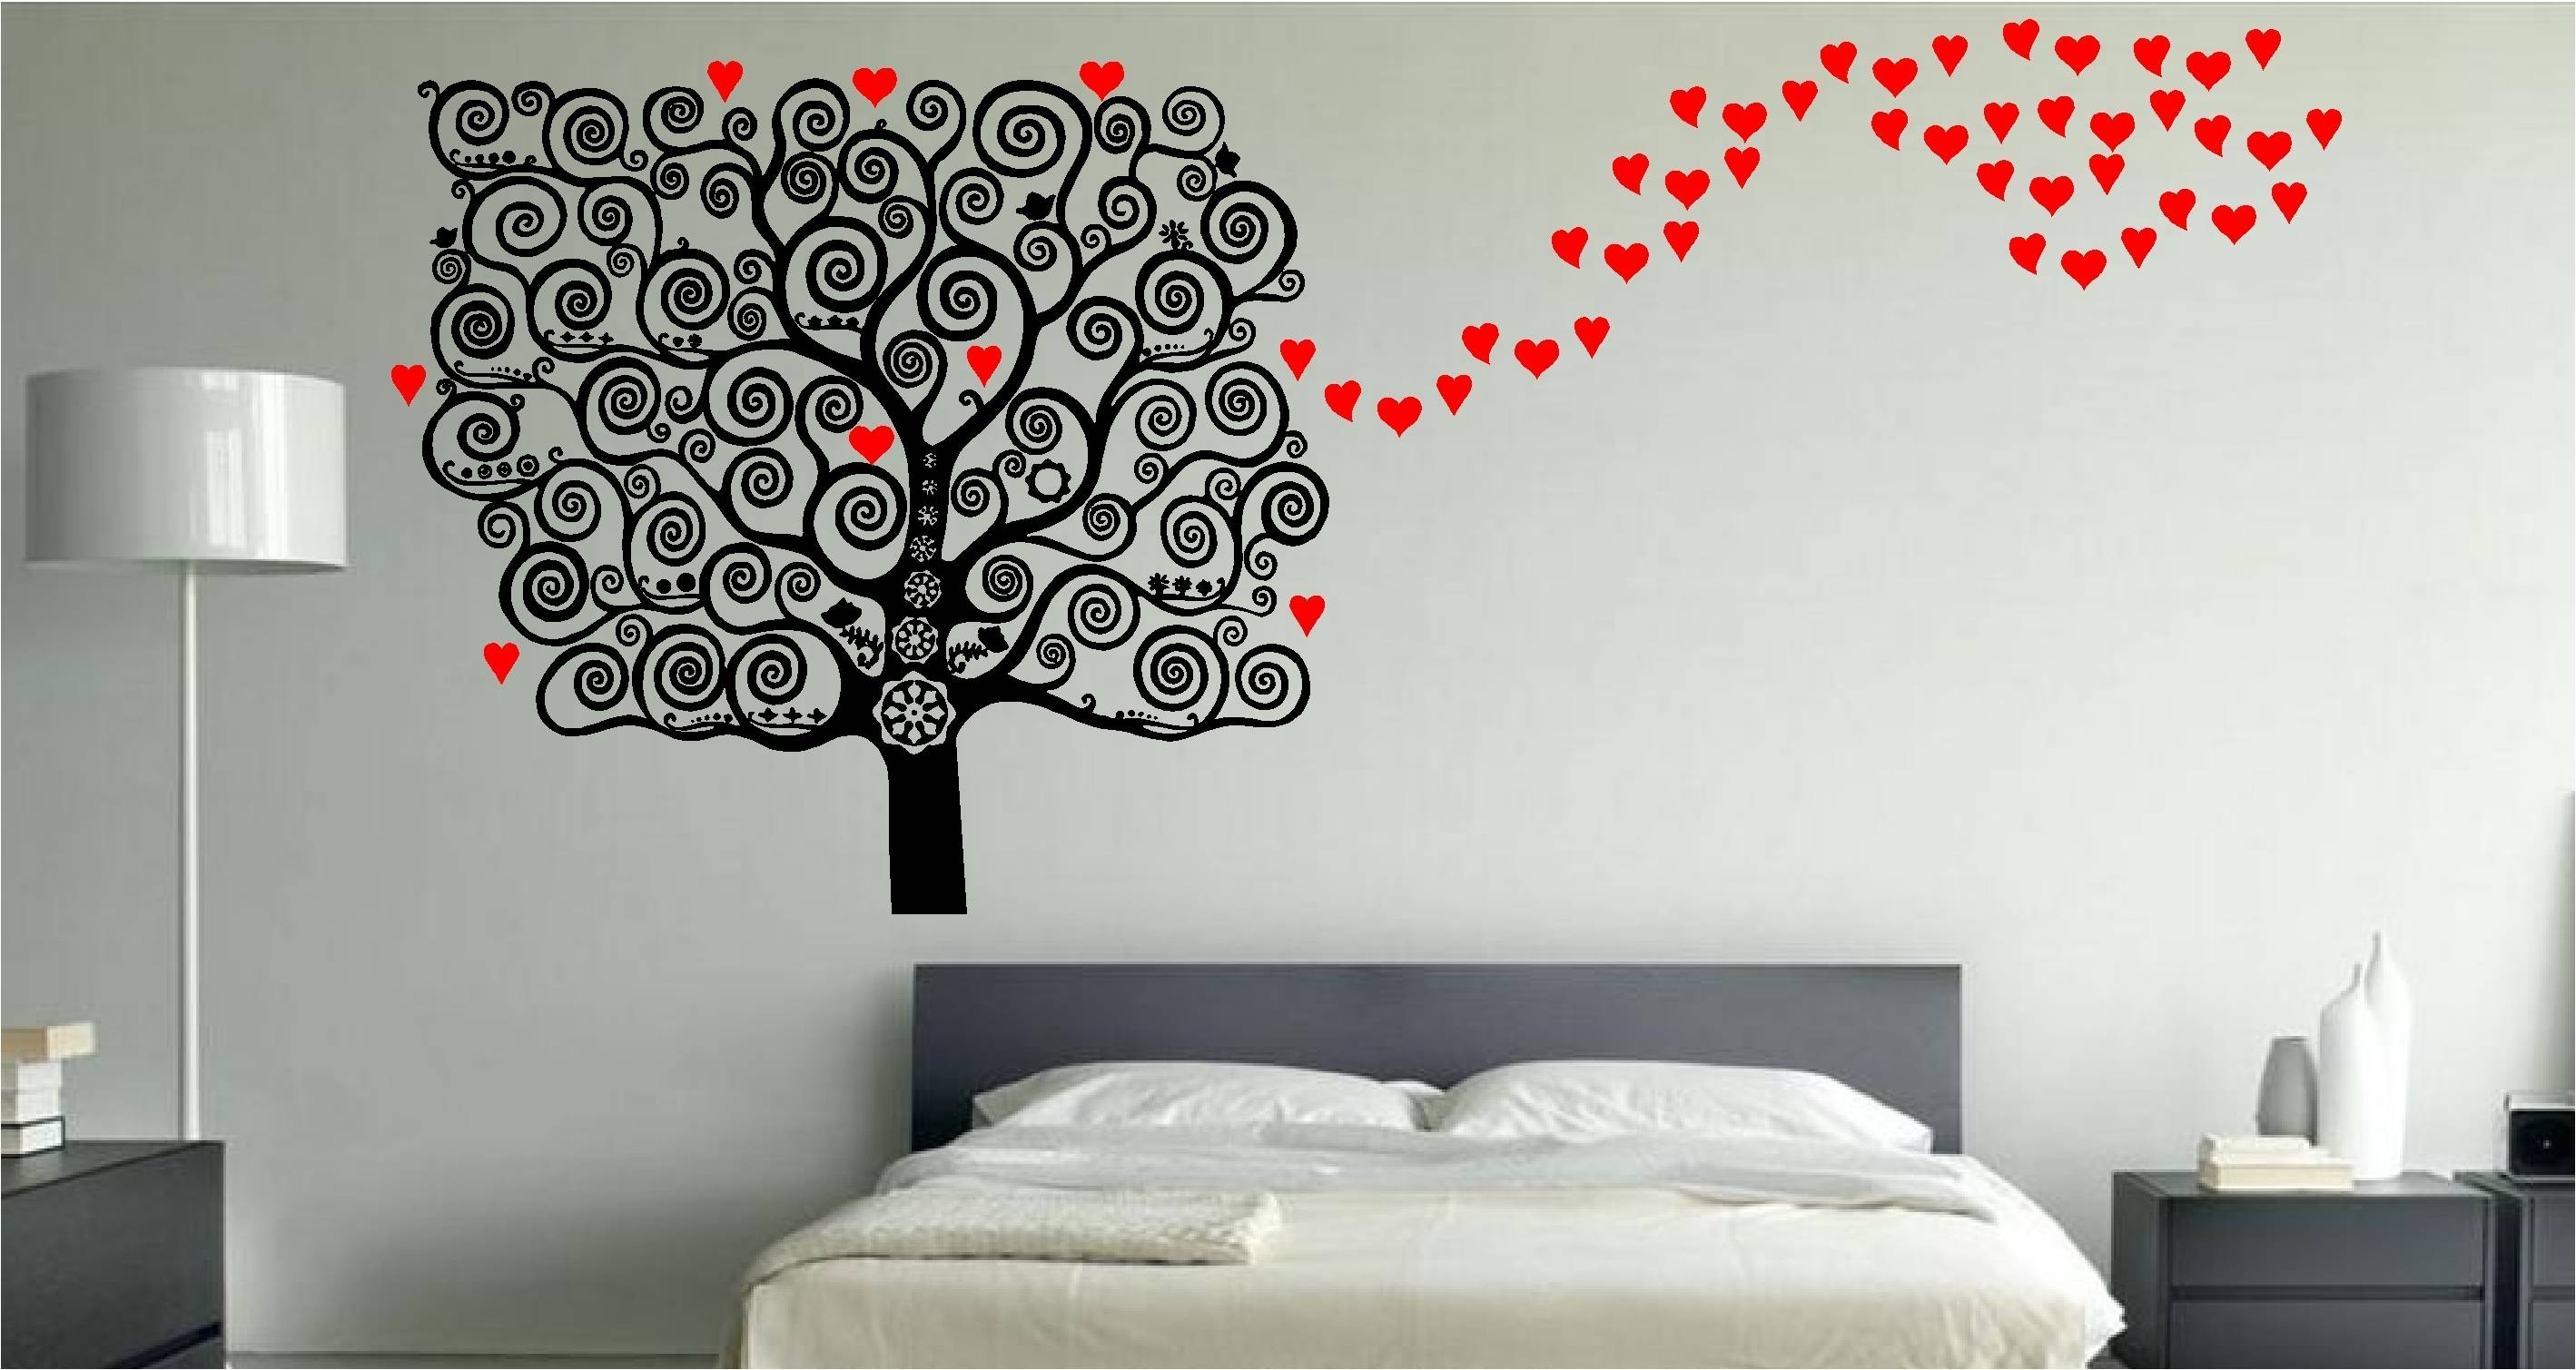 Bedroom Design : Amazing Unique Wall Art Large Wall Decor With Regard To Most Recent Oversized Wall Art (View 6 of 25)